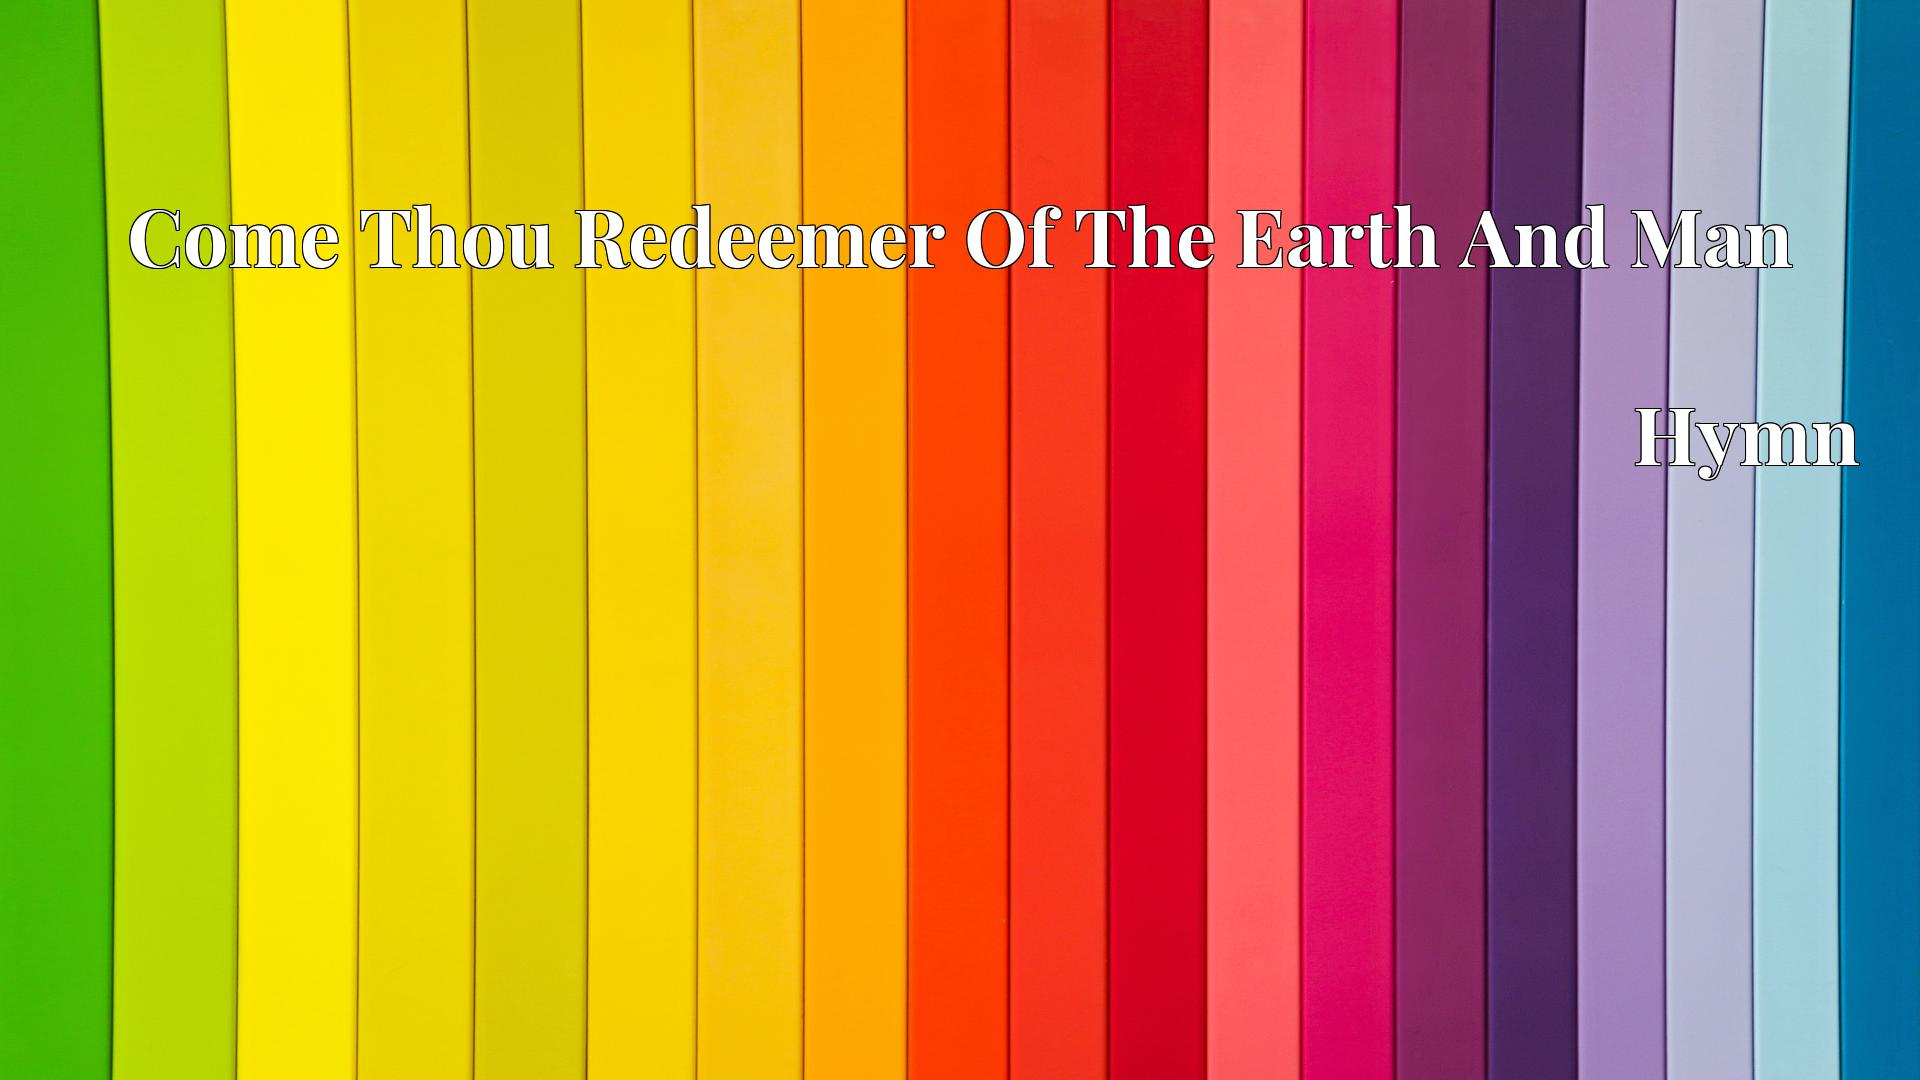 Come Thou Redeemer Of The Earth And Man - Hymn